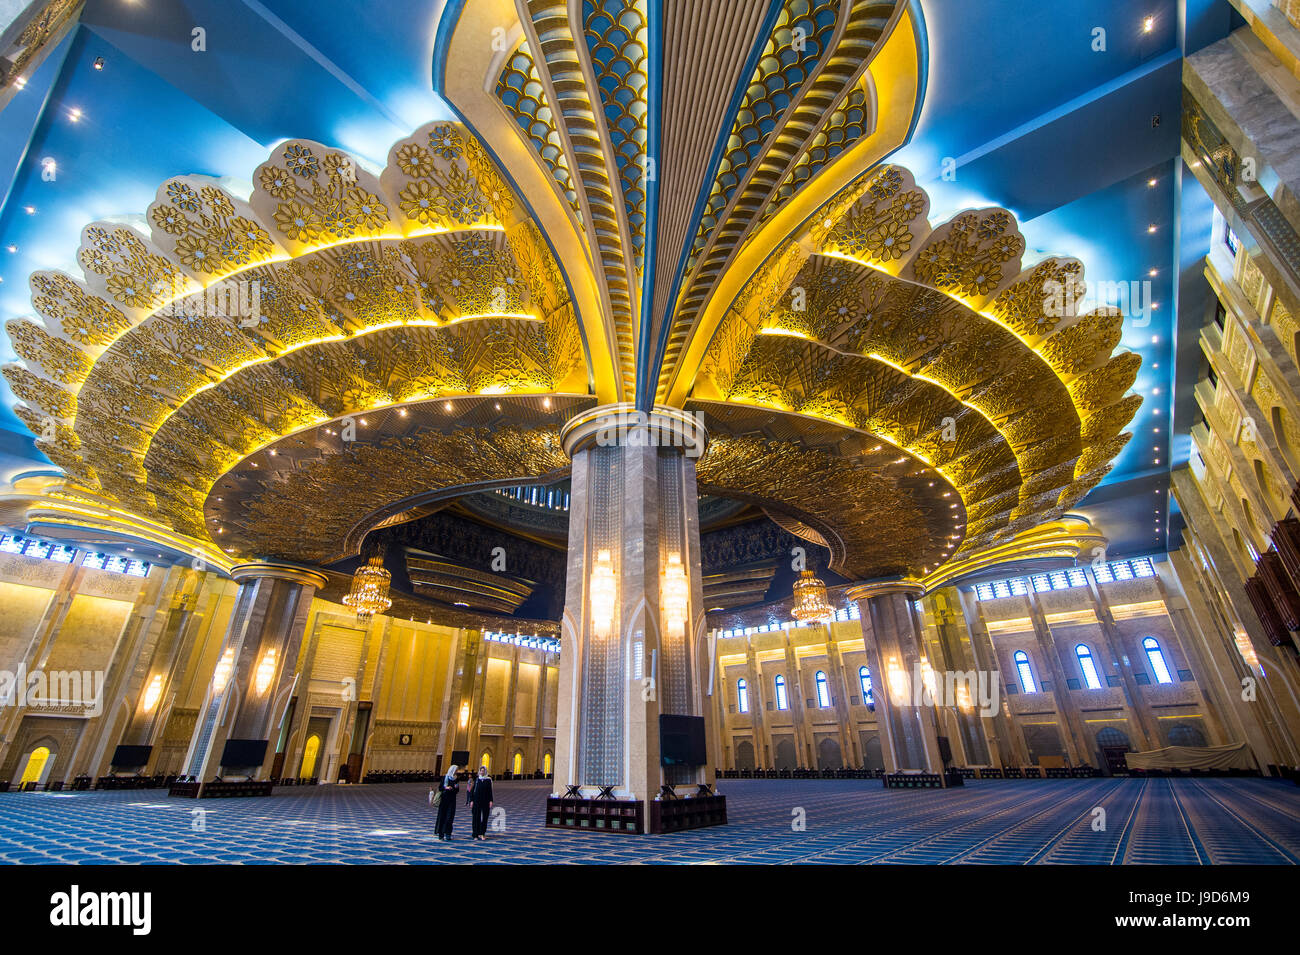 Inside the magnificent Grand Mosque, Kuwait City, Kuwait, Middle East - Stock Image